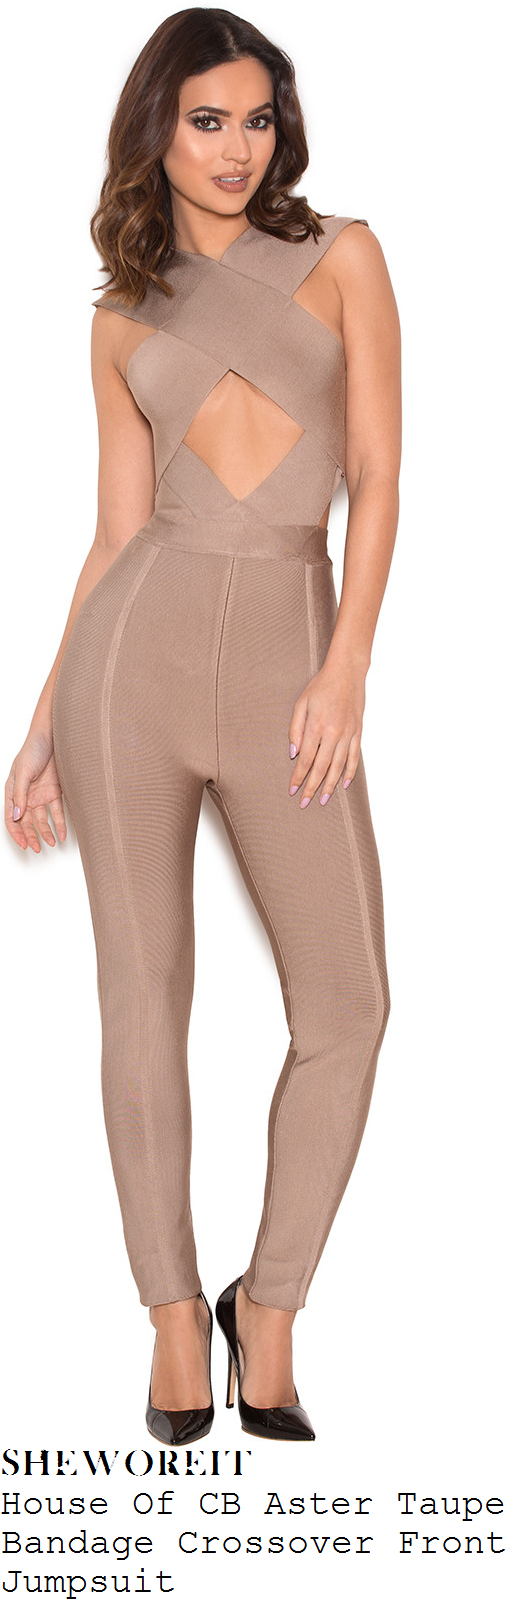 kylie-jenner-house-of-cb-aster-taupe-beige-sleeveless-cross-over-front-cut-out-detail-bodycon-bandage-jumpsuit